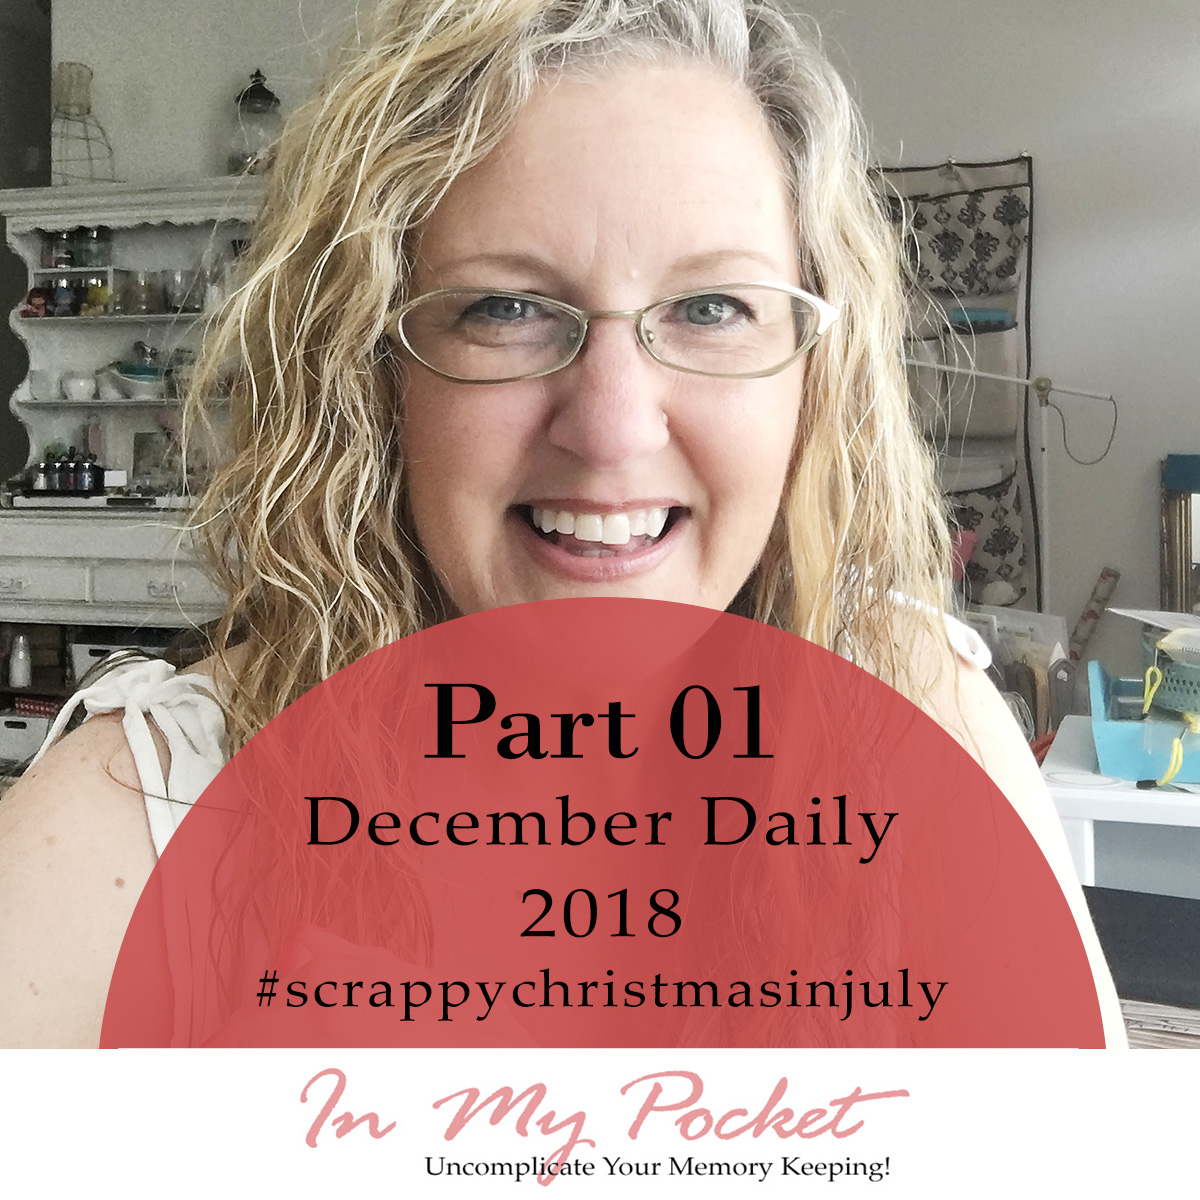 Larkindesign #scrappychristmasinjuly | Introduction to my December Daily 2018!!!